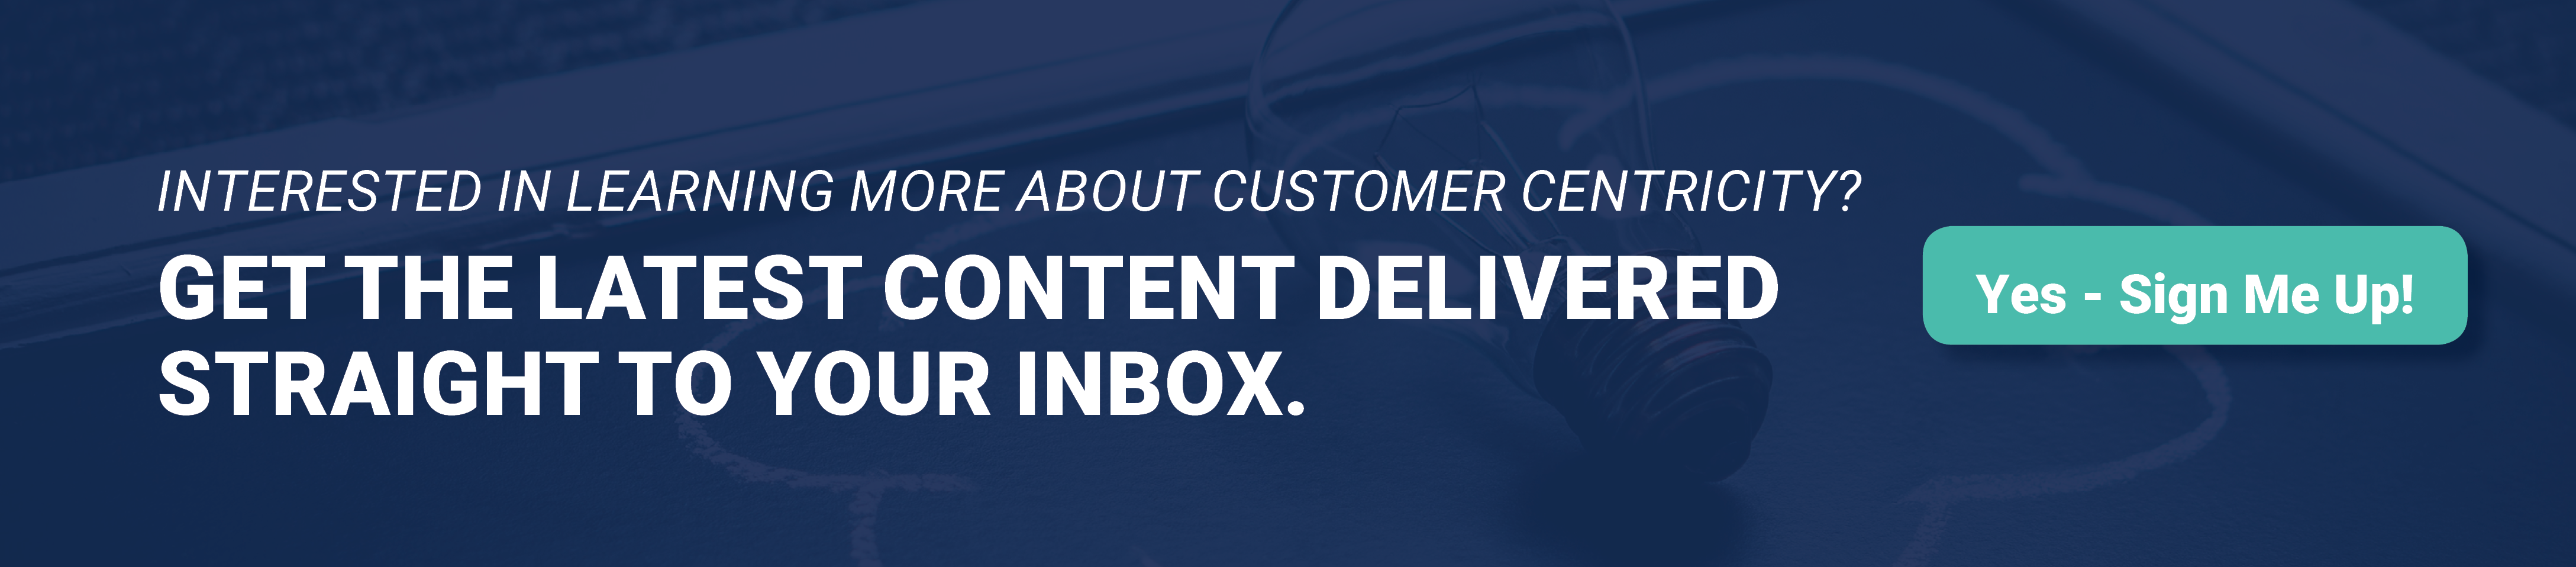 Learn more about customer centricity by getting the latest content delivered to your inbox.